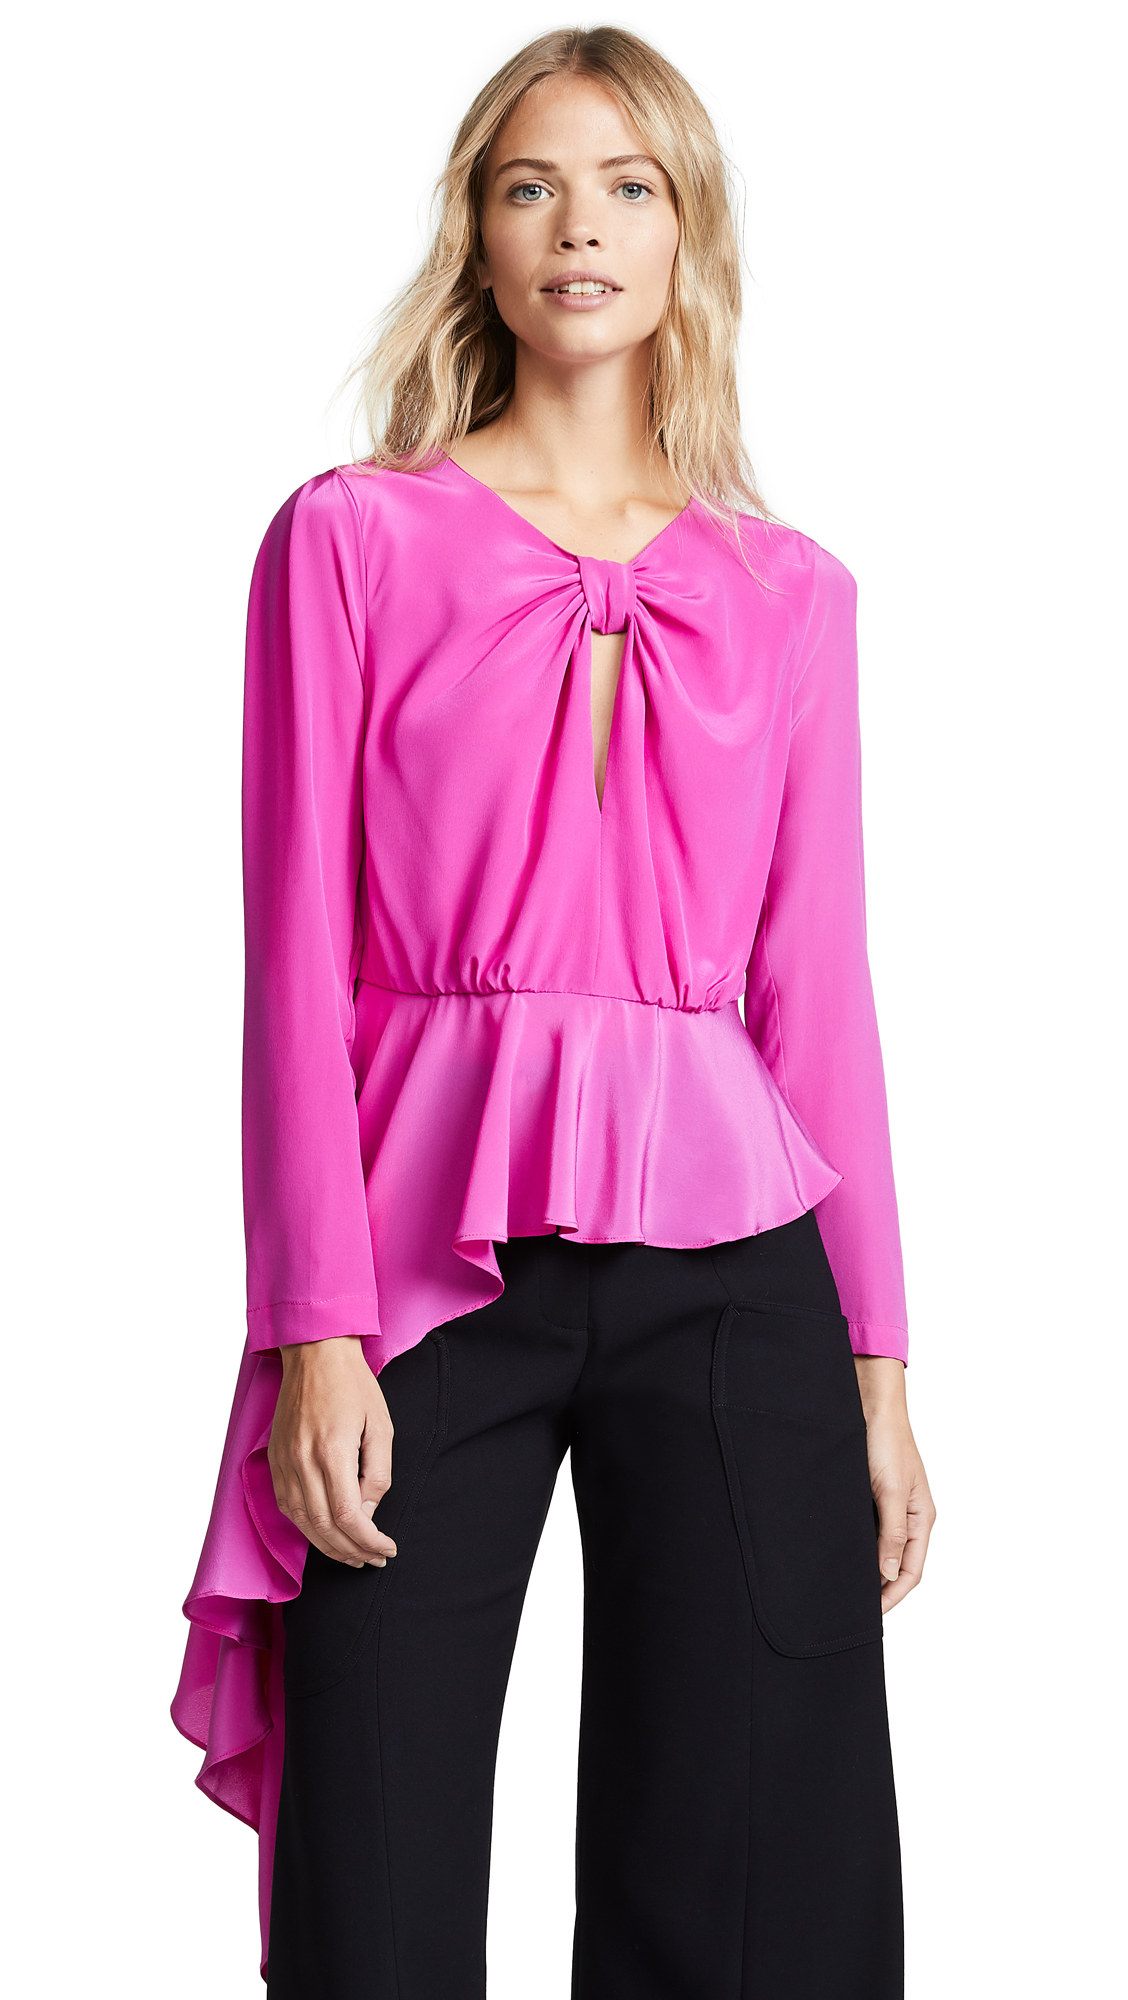 DELFI COLLECTIVE Lana Top in Pink